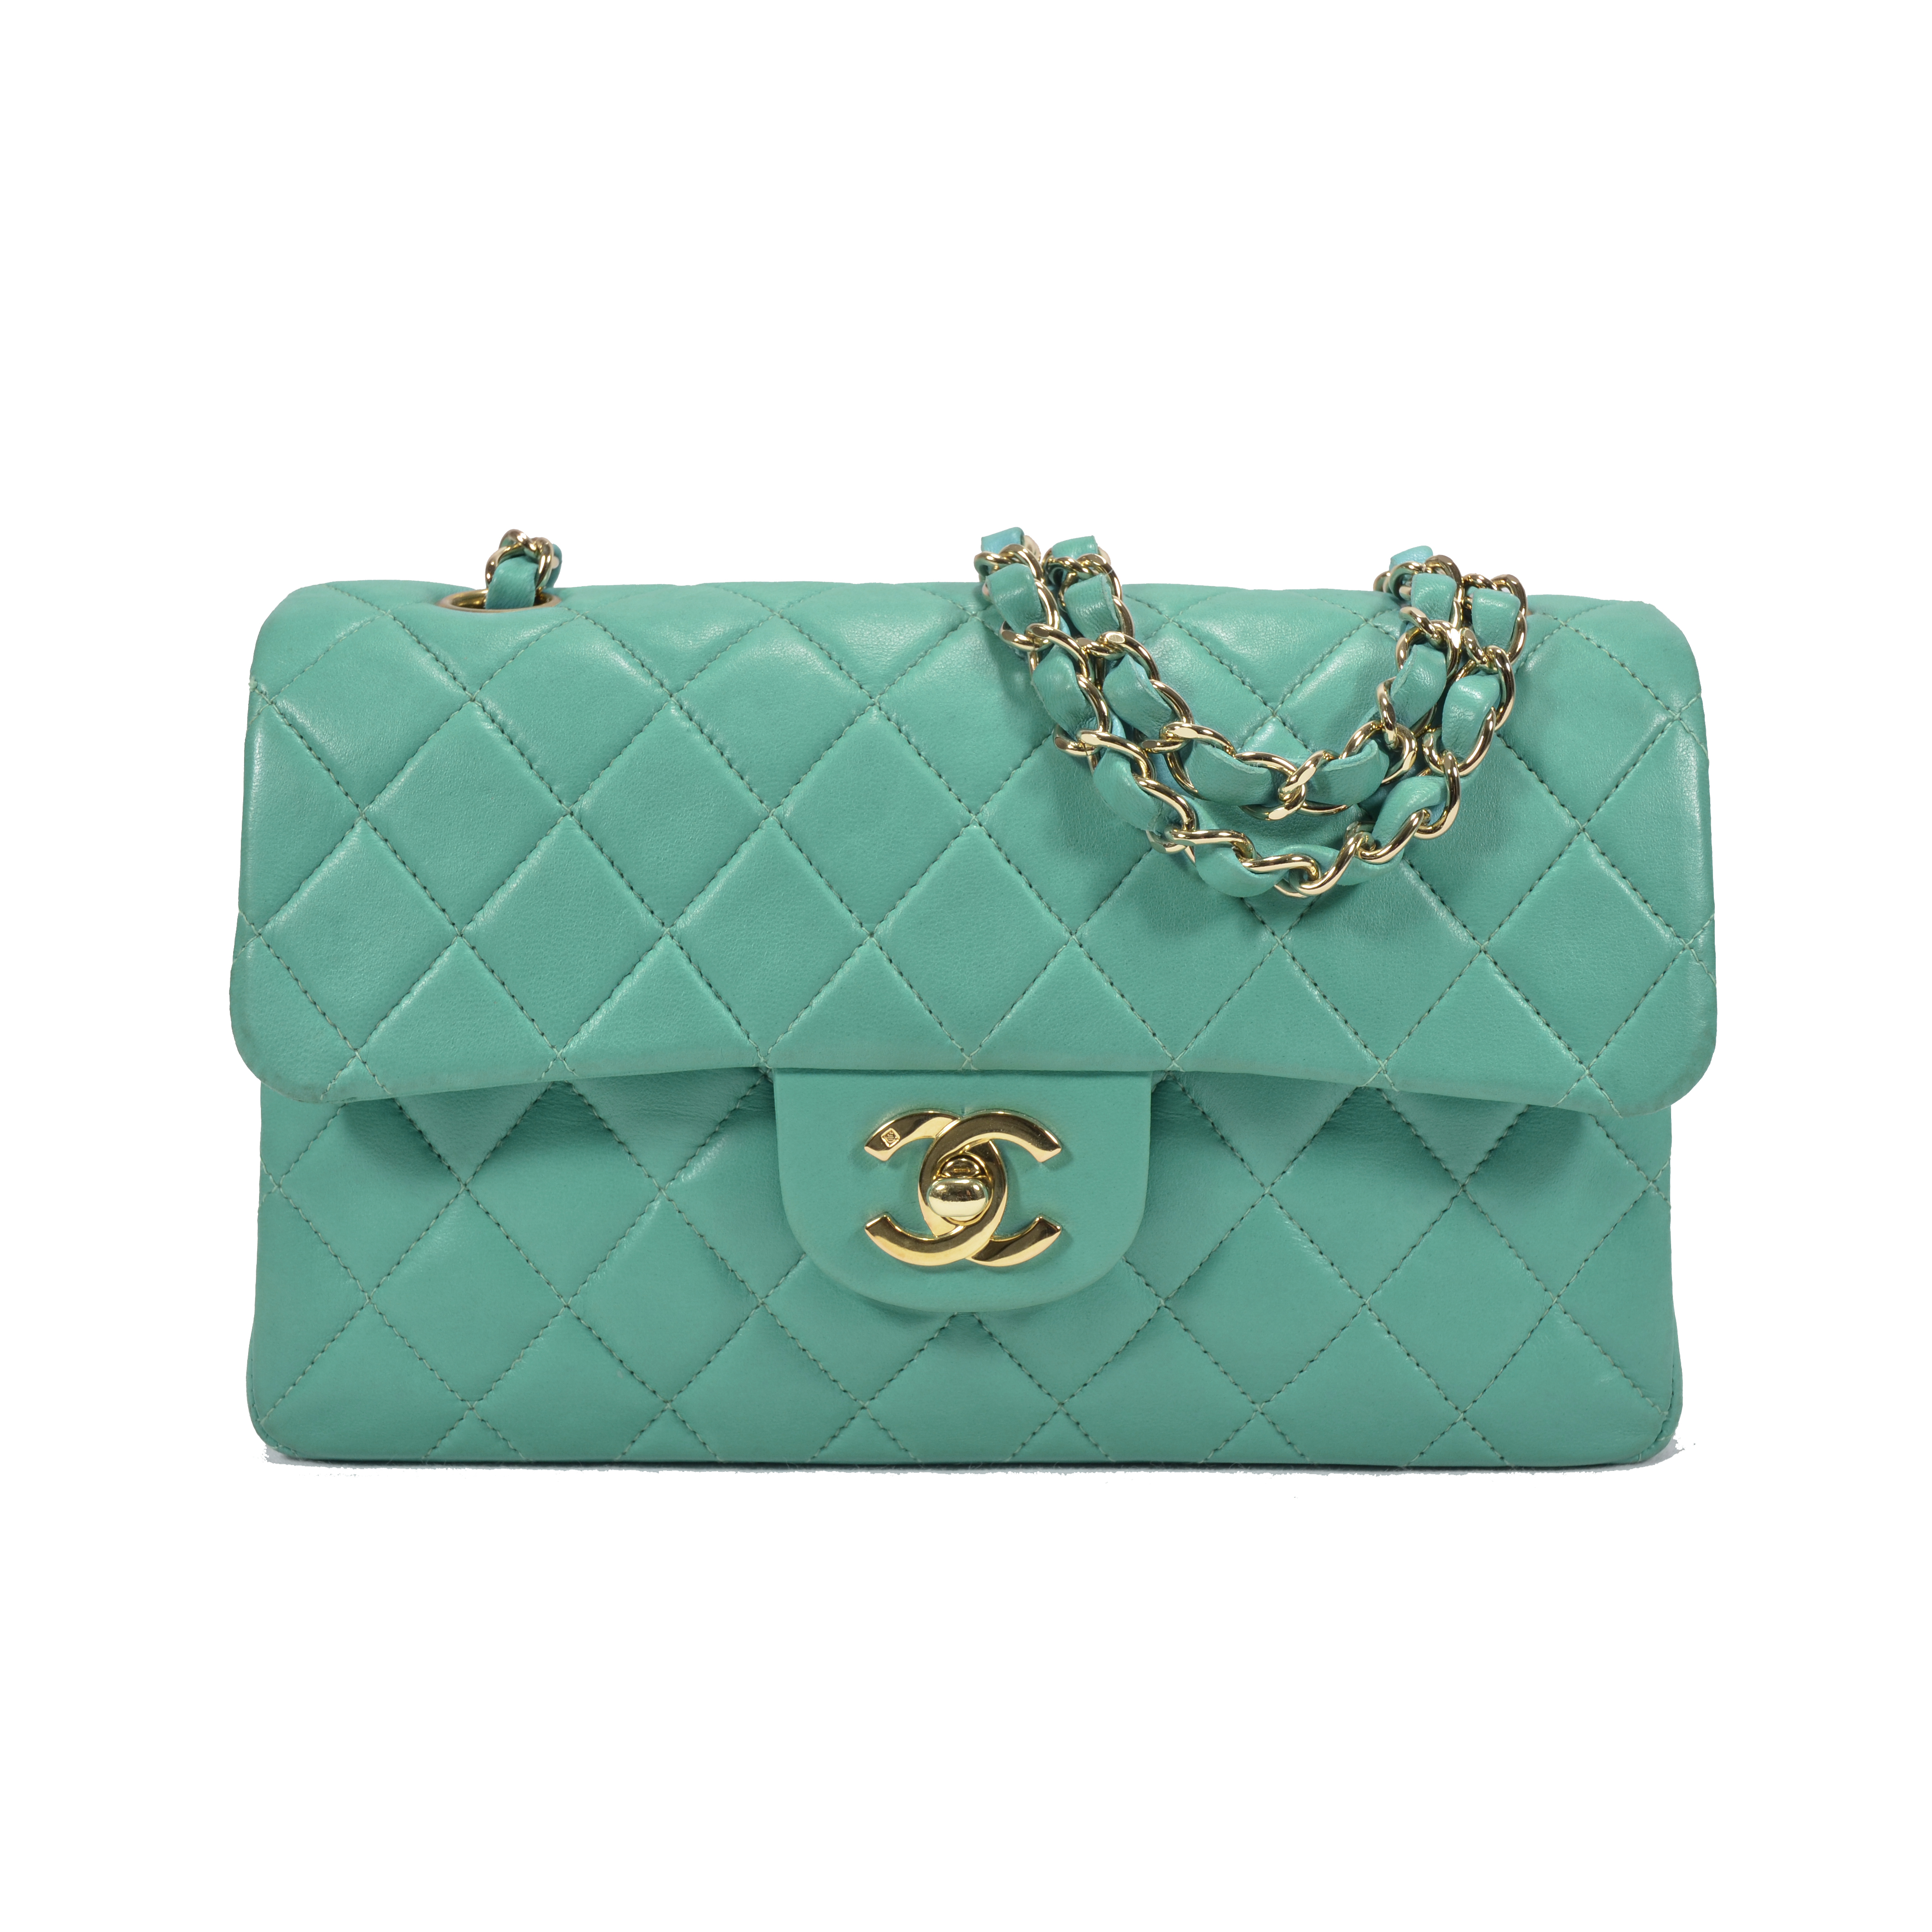 dec63aa9e34f Authentic Second Hand Chanel Turquoise Classic Double Flap Bag  (PSS-051-00145) | THE FIFTH COLLECTION